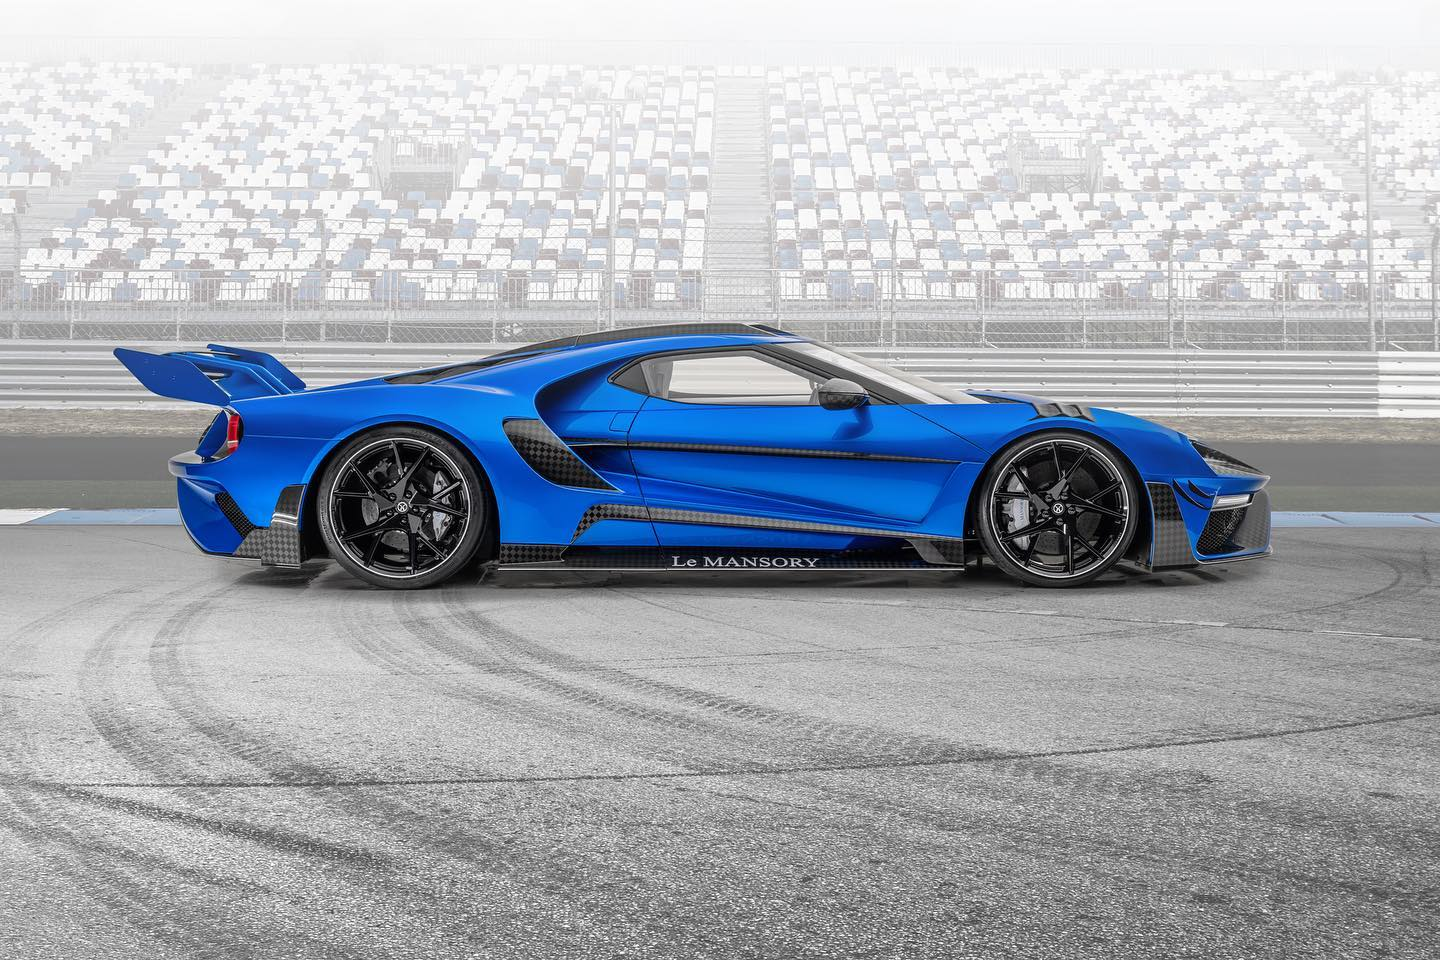 Ford-GT-by-Mansory-Le-Mansory-2